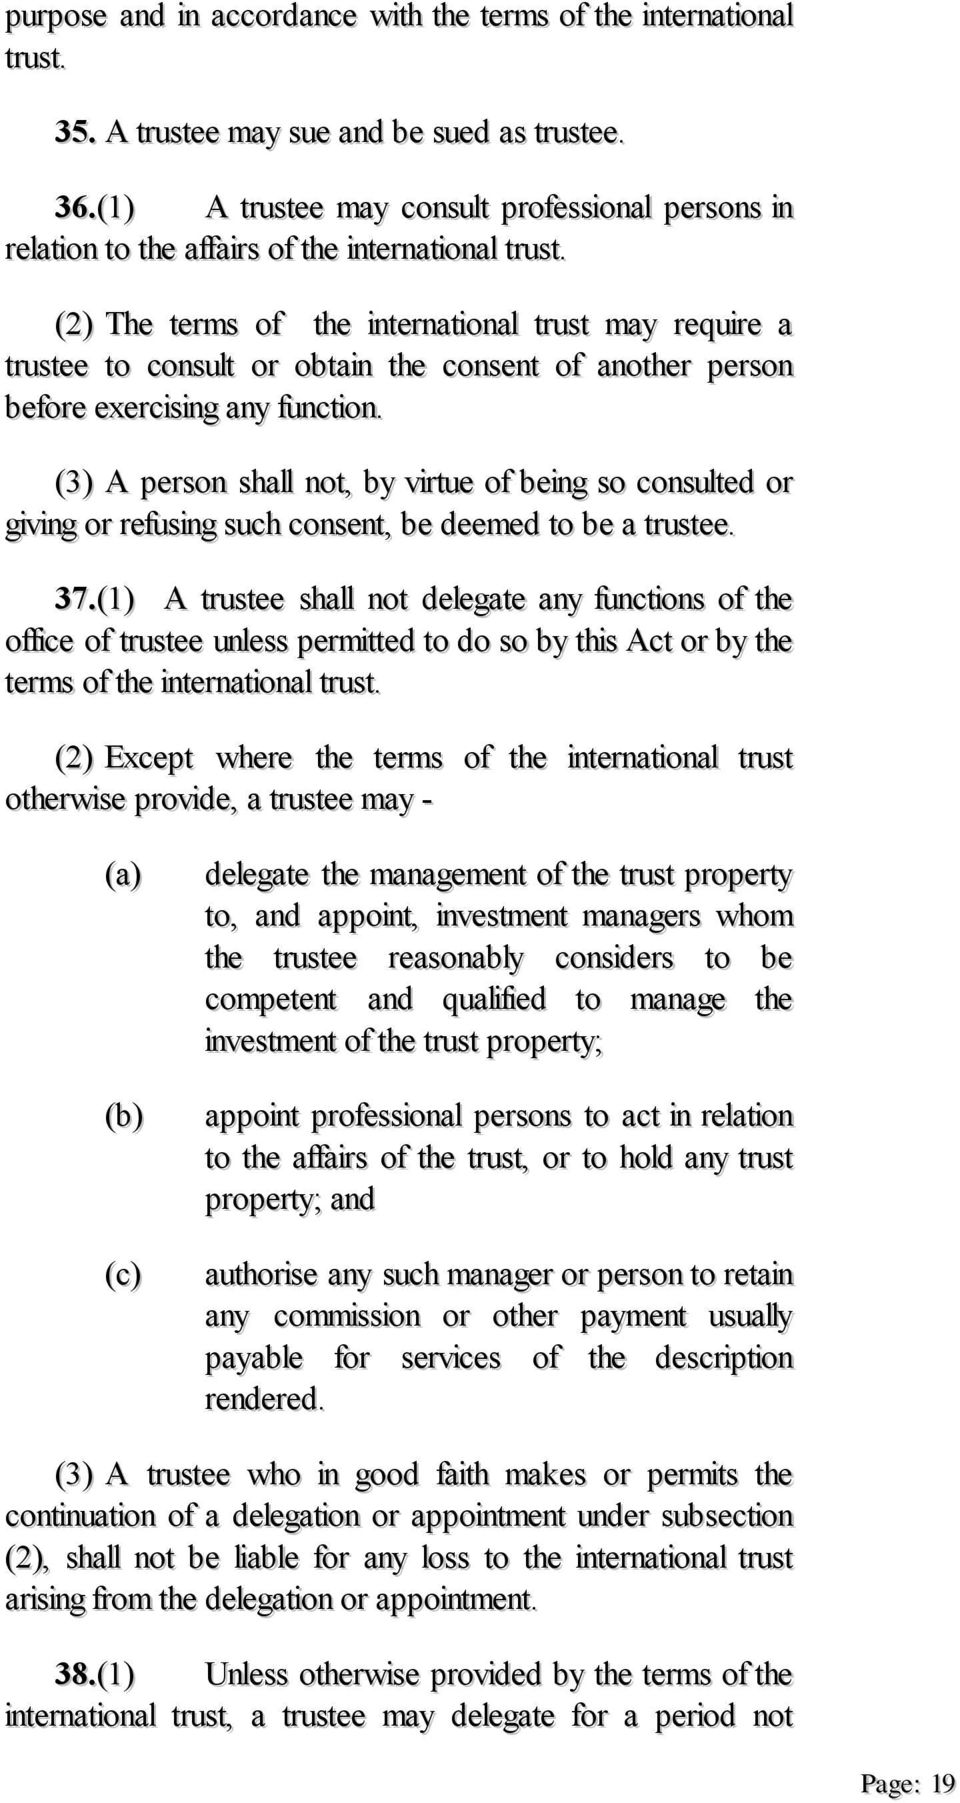 (2) The terms of the international trust may require a trustee to consult or obtain the consent of another person before exercising any function.